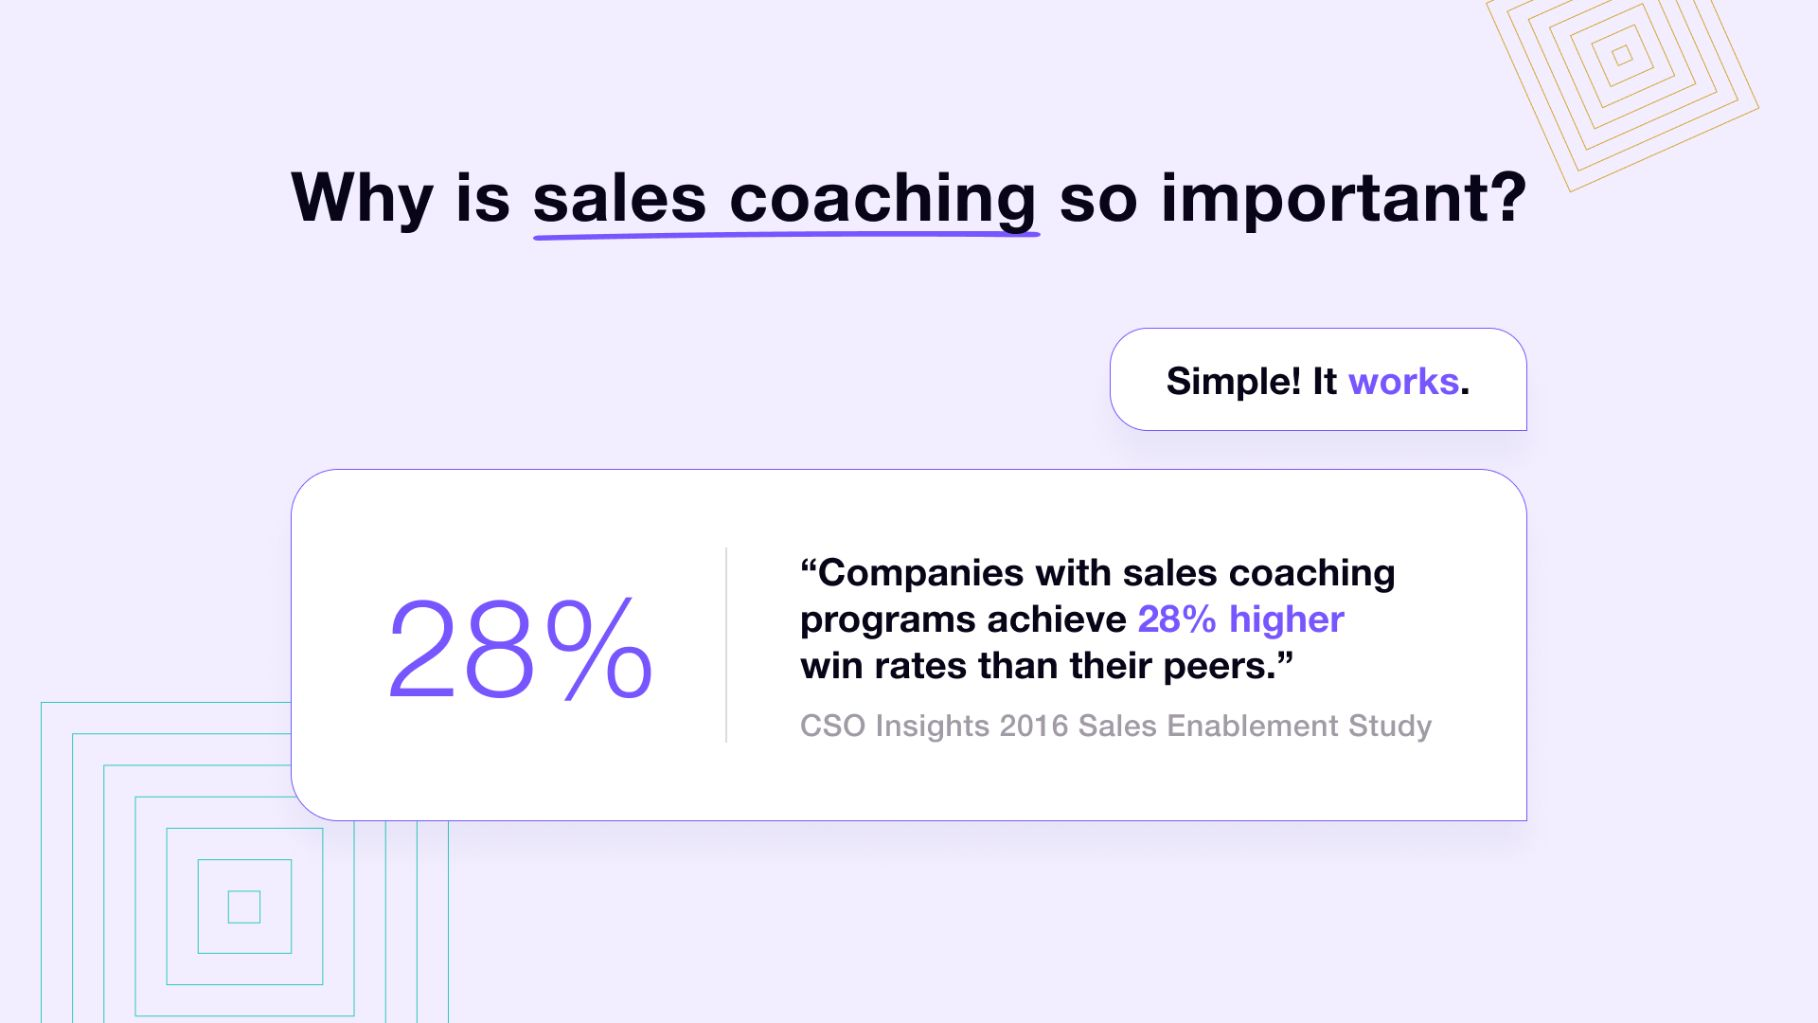 Is sales coaching important?